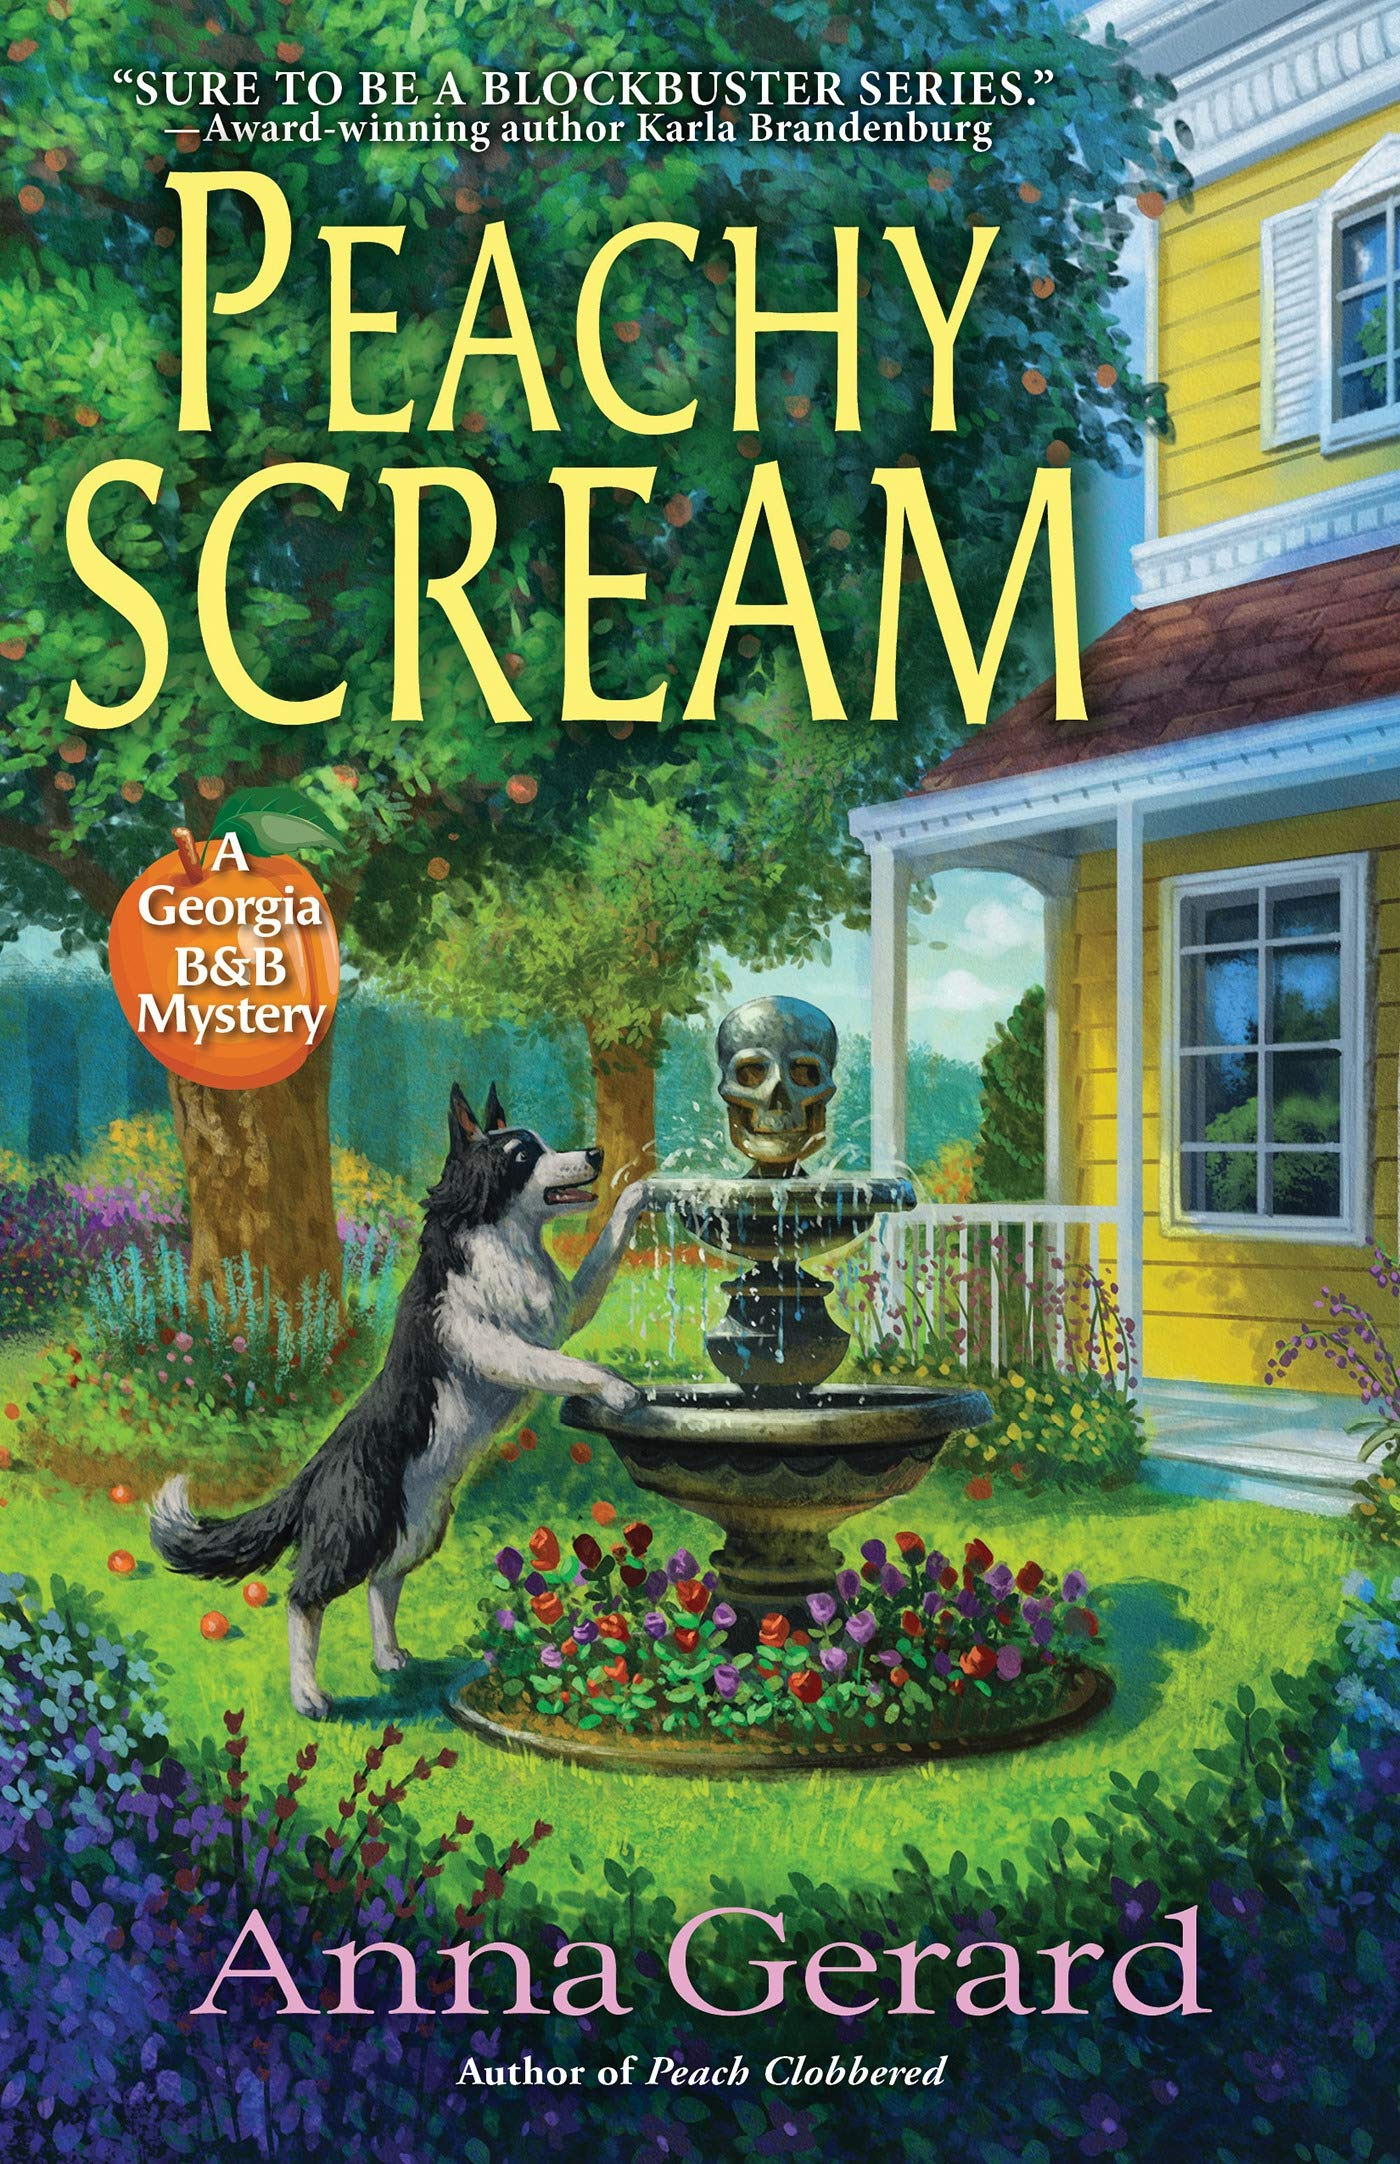 Peachy Scream: A Georgia B&B Mystery